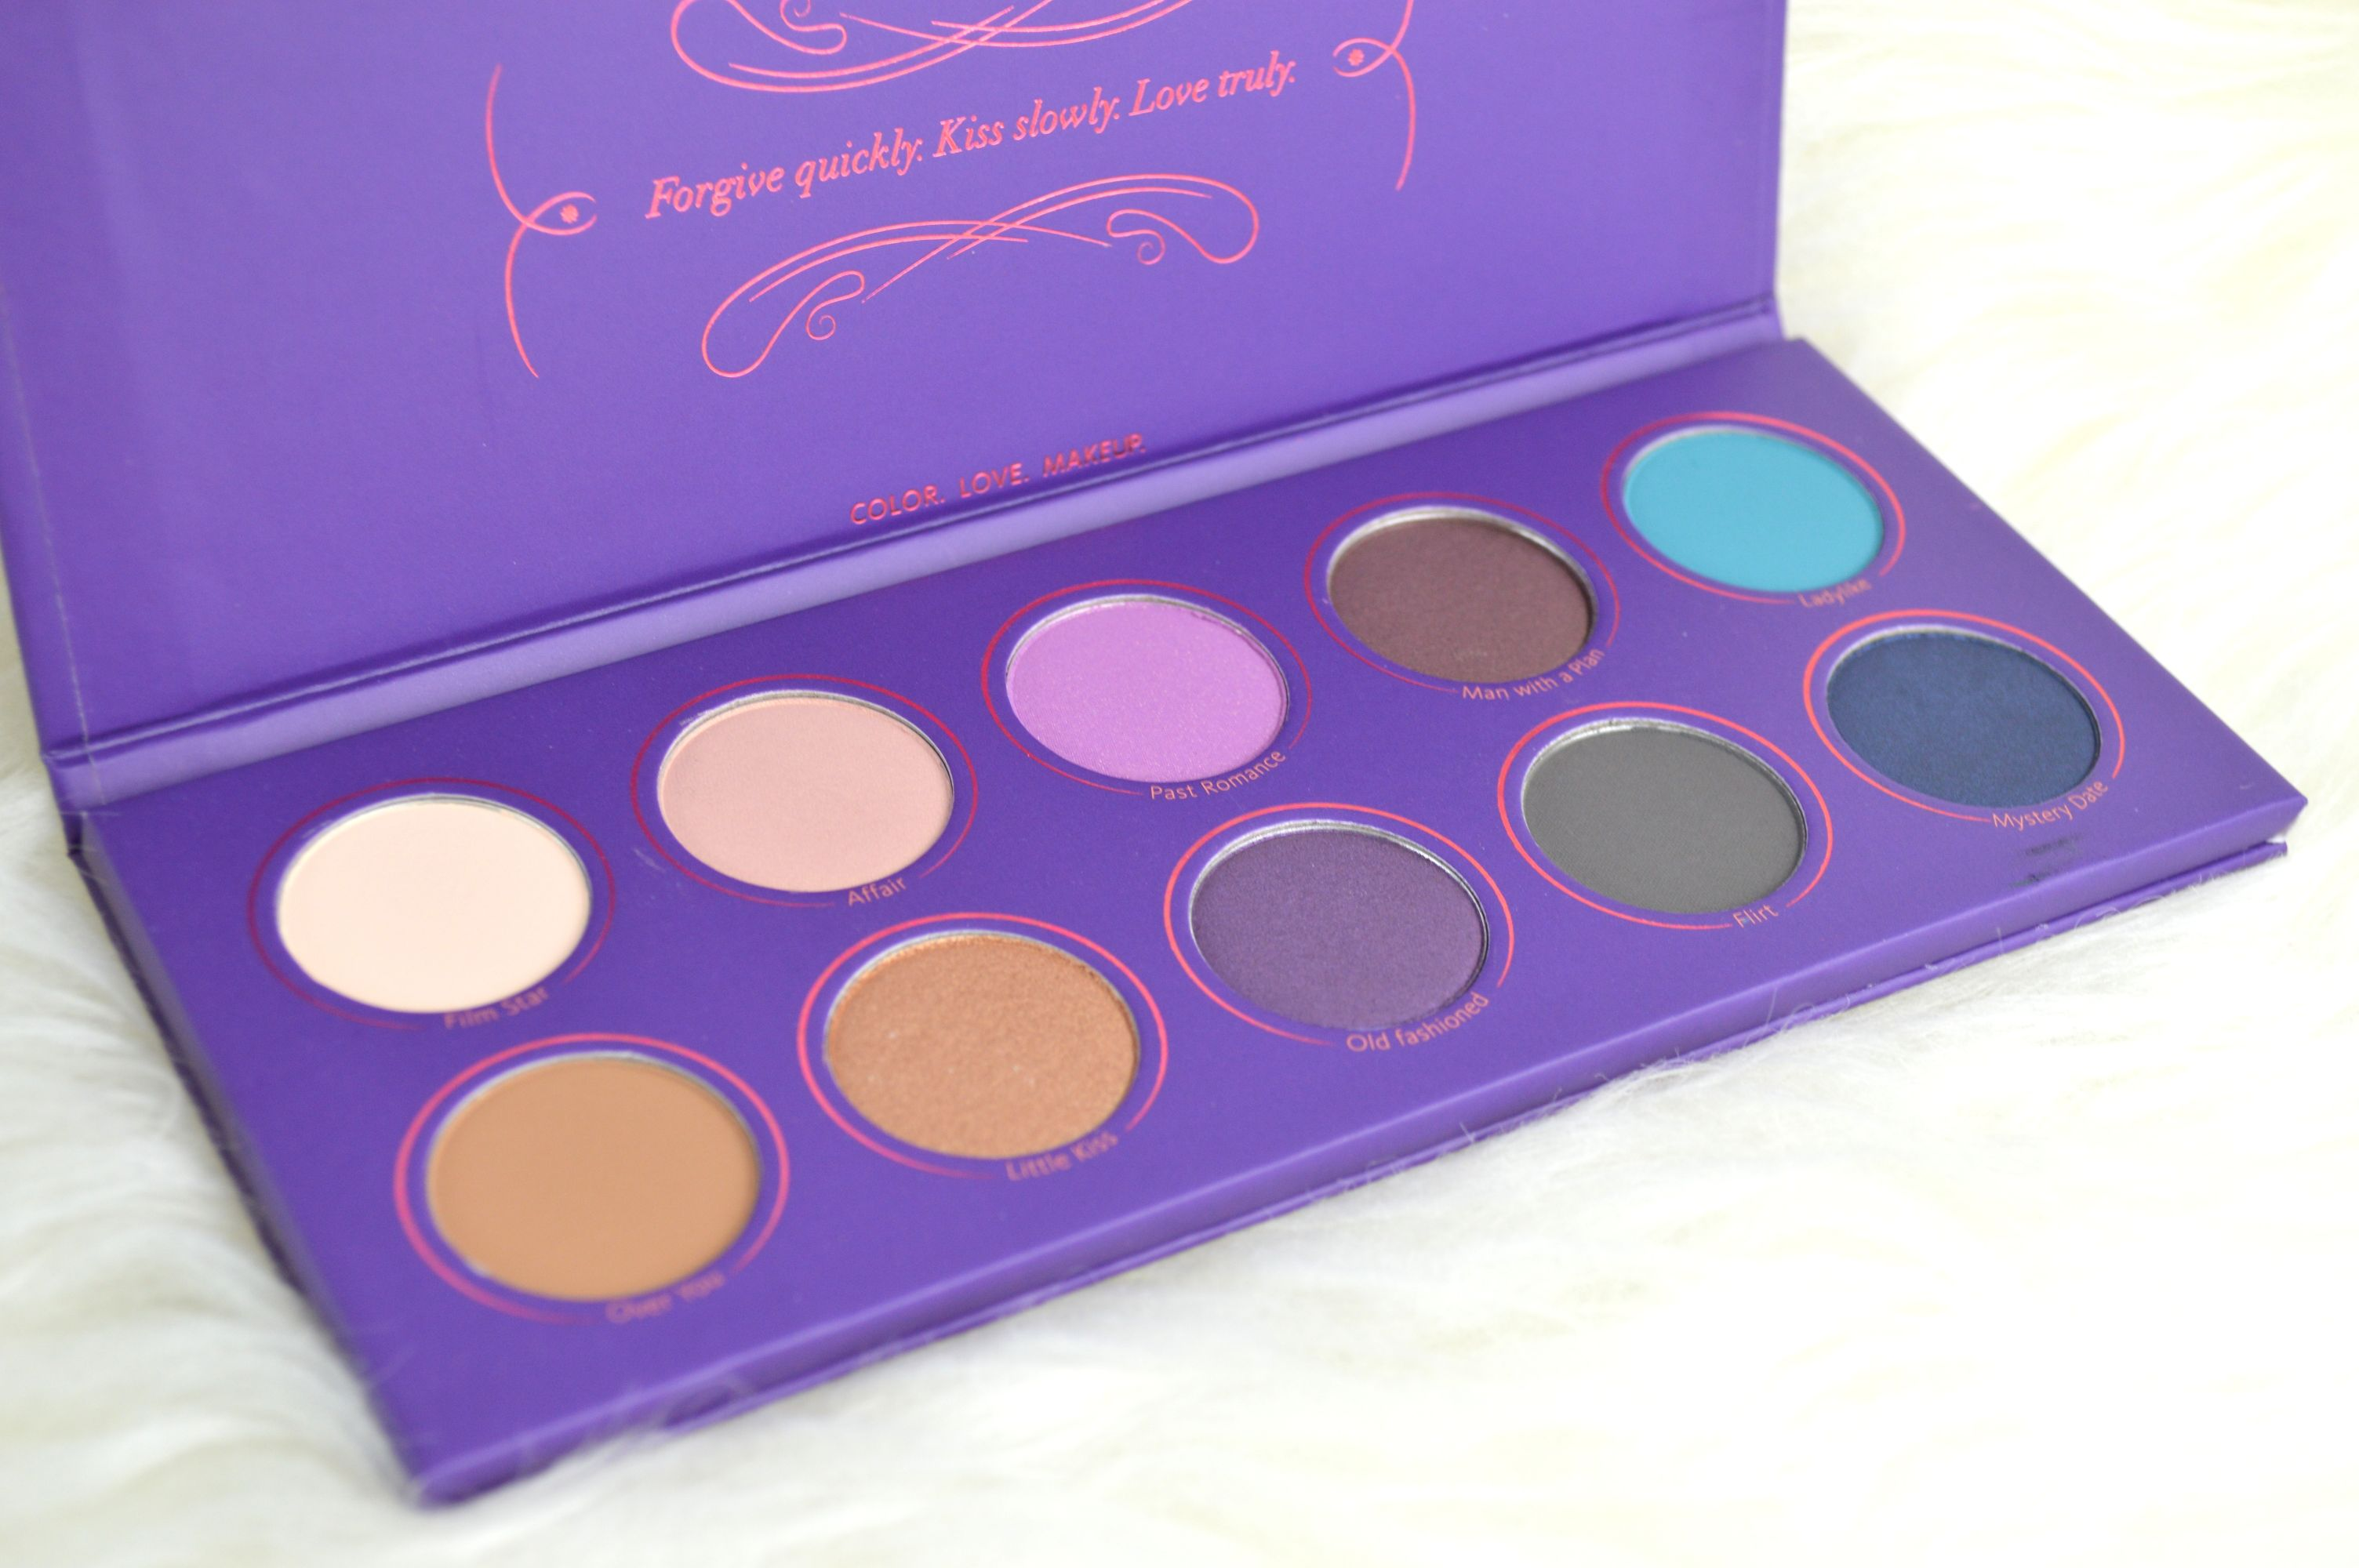 zoeva_love_is_a_story_palette_mikalicious